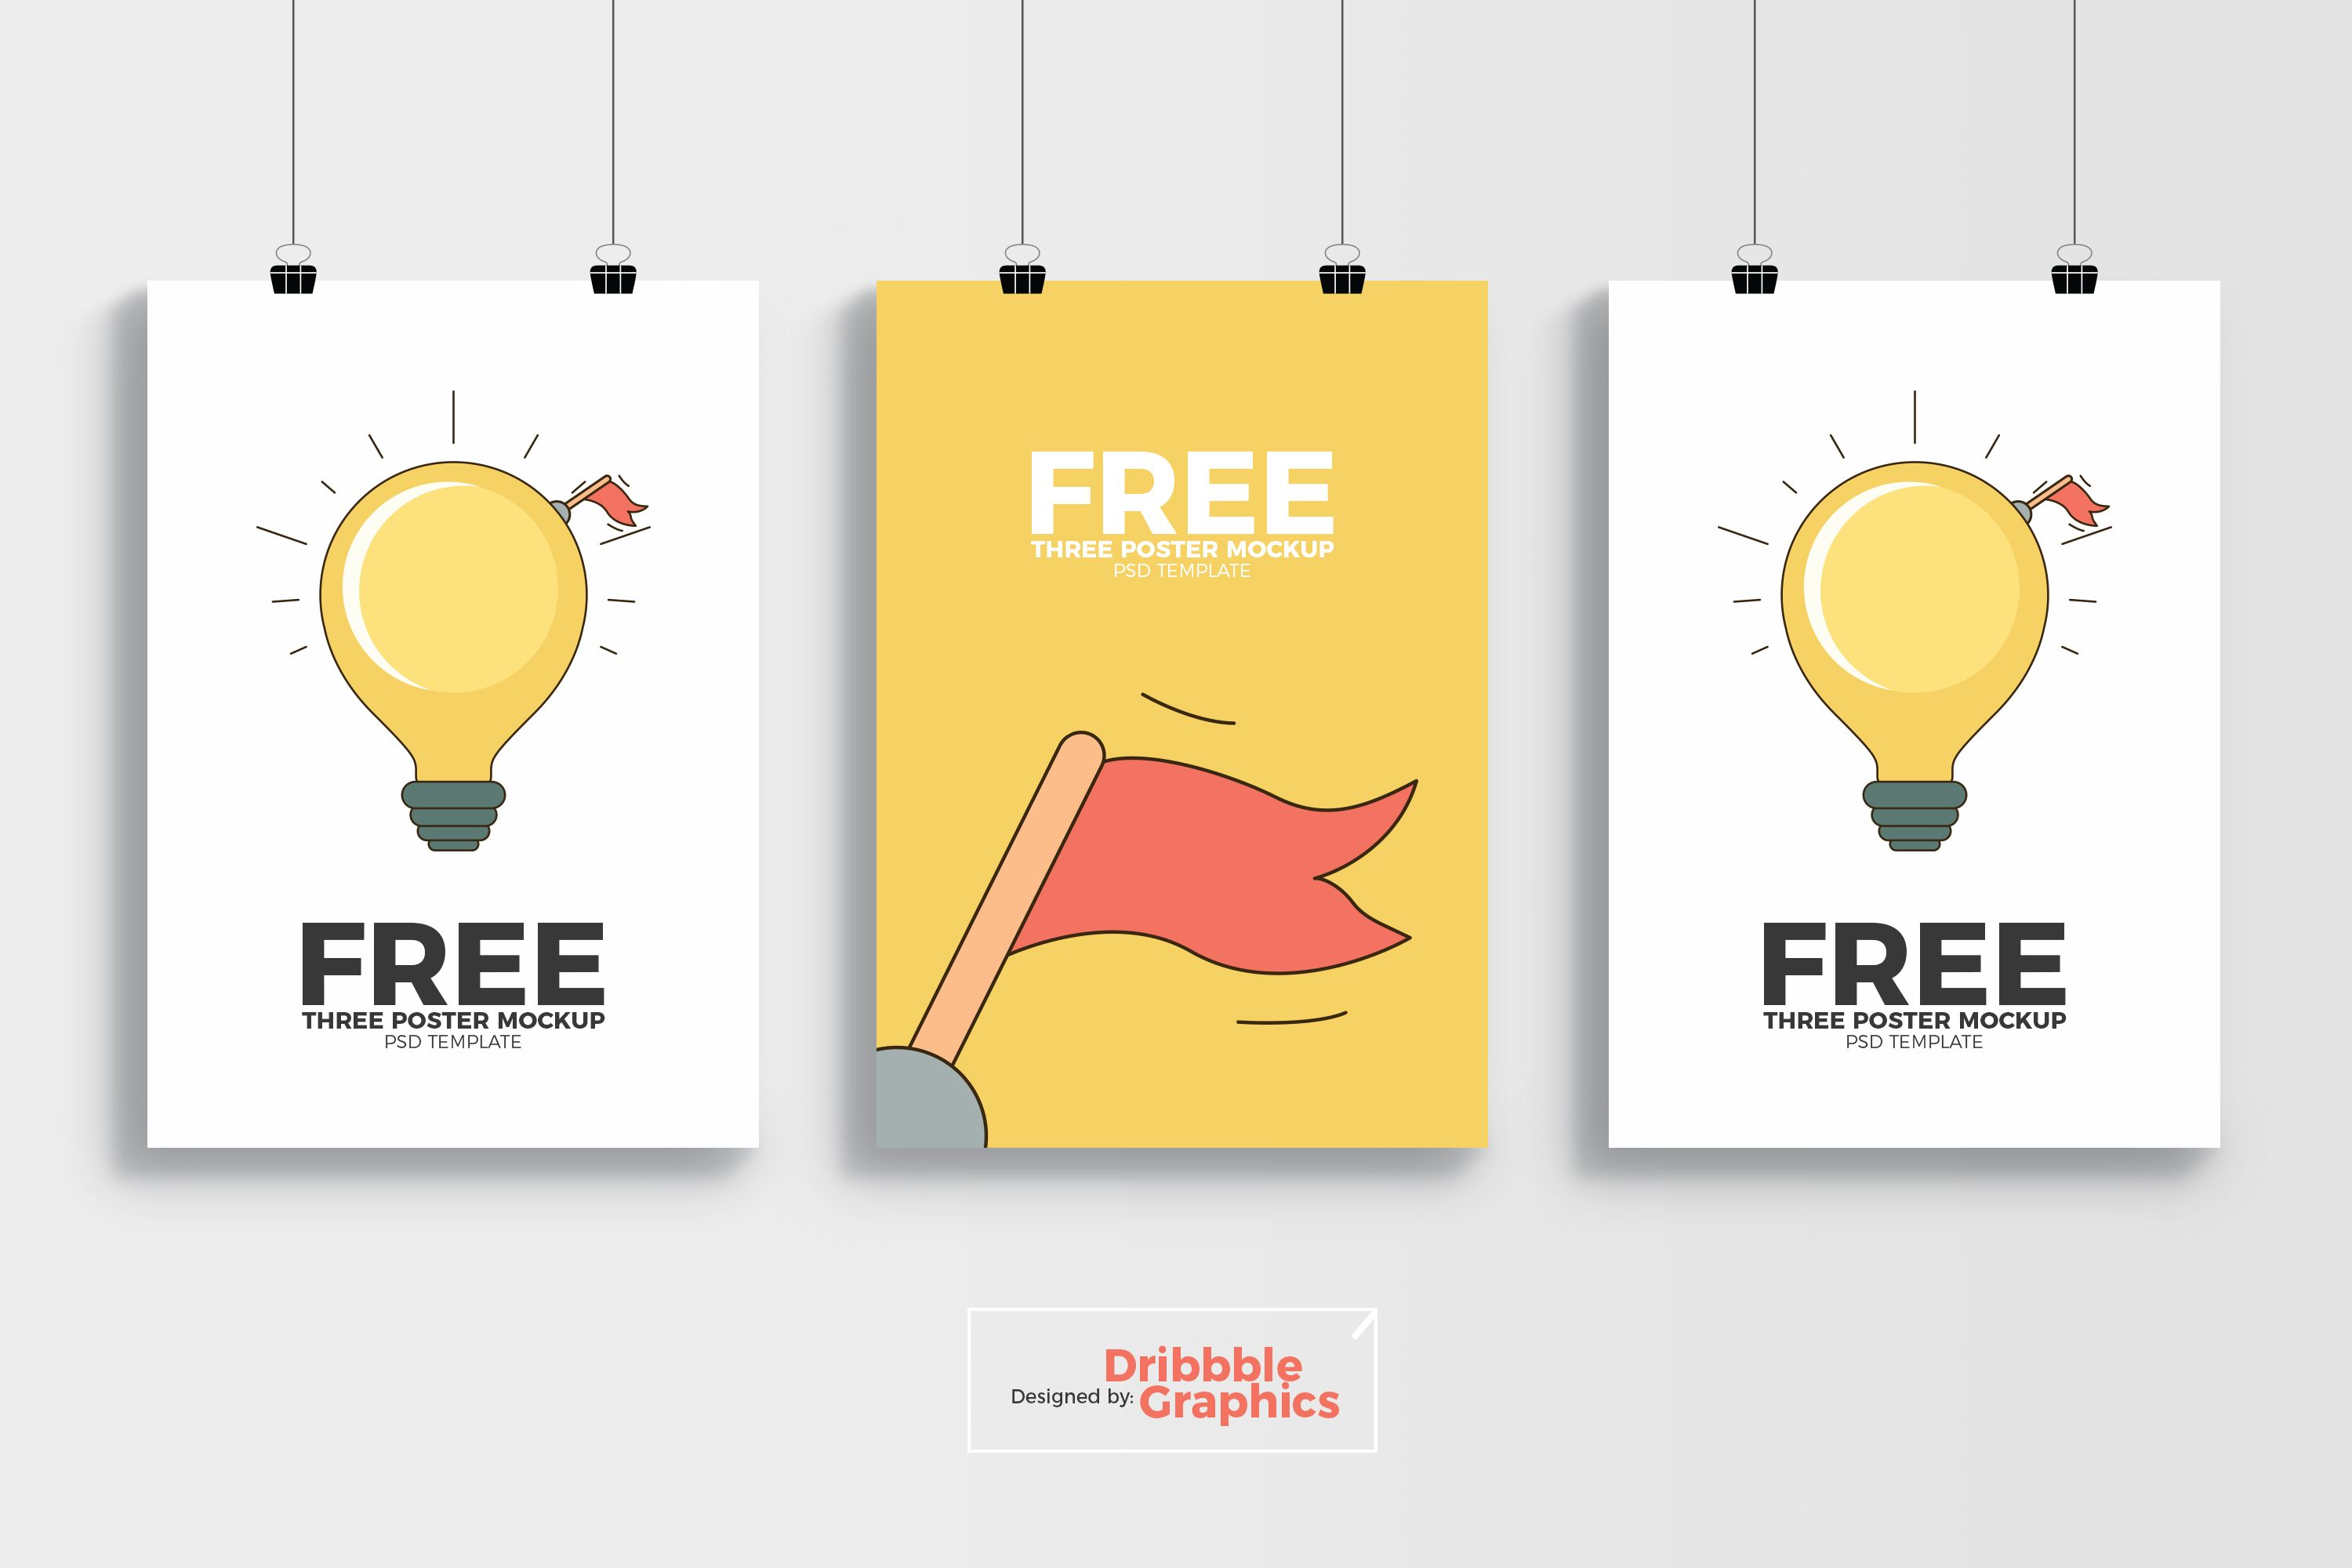 Free 3 Poster Mockup Psd Template Dribbble Graphics Poster Mockup Psd Poster Mockup Poster Mockup Free